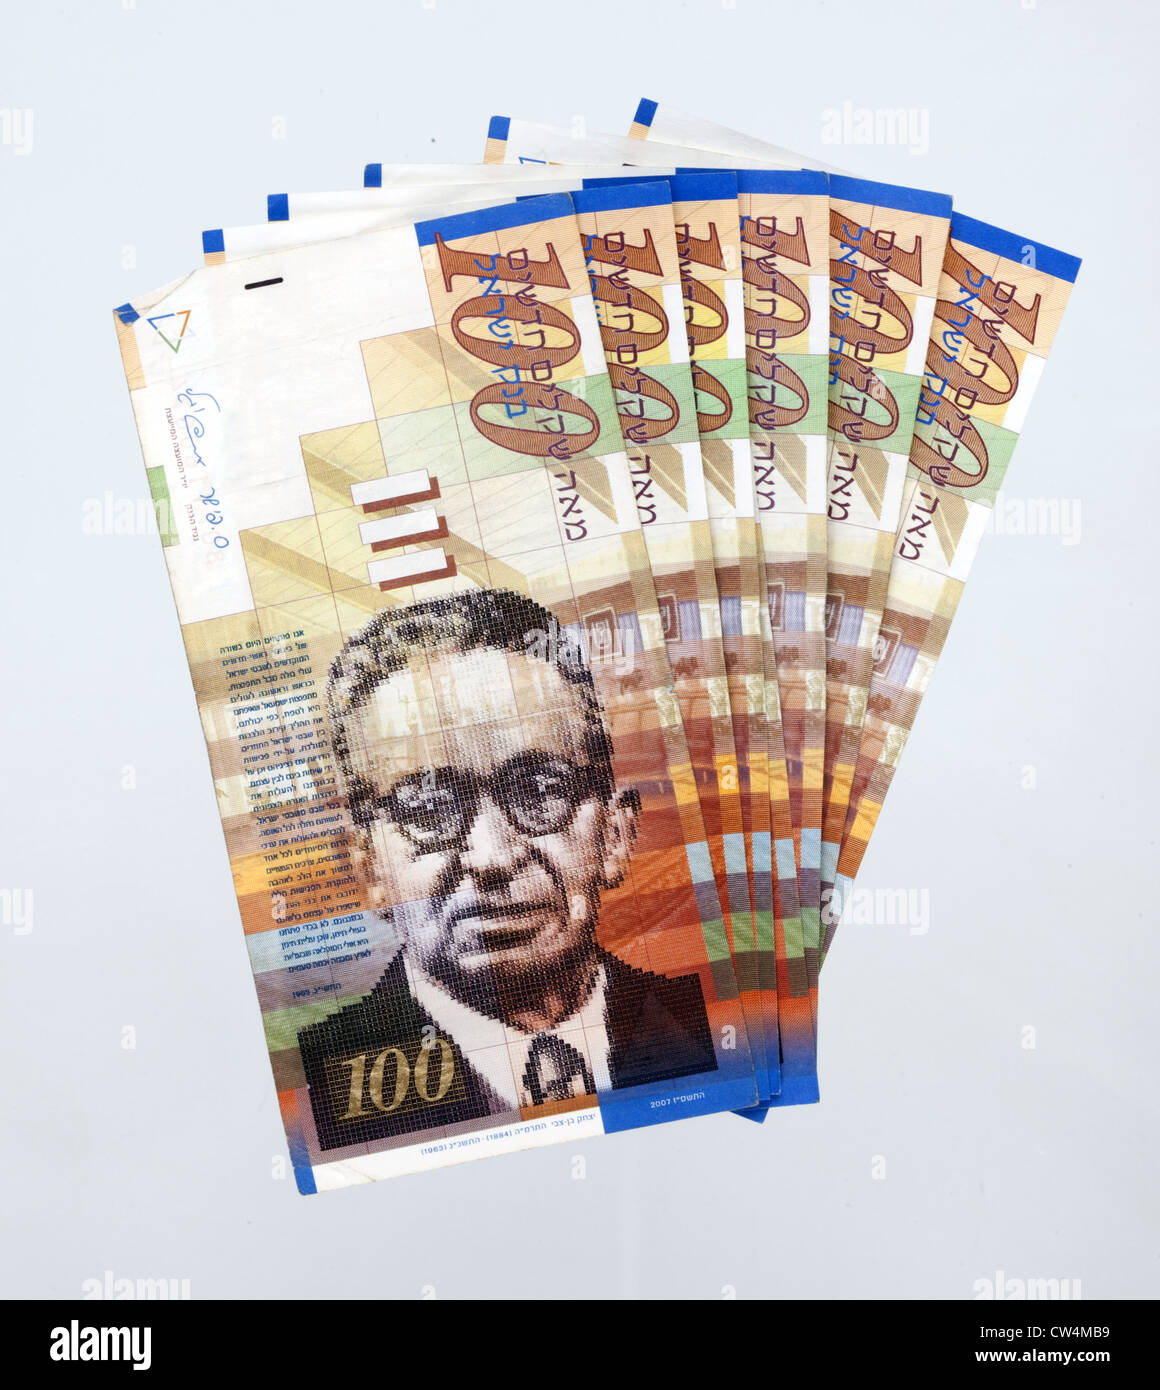 Yitzhak Ben-Zvi the second and longest-serving President of Israel is depicted on the new 100 Shekel Bills - Stock Image